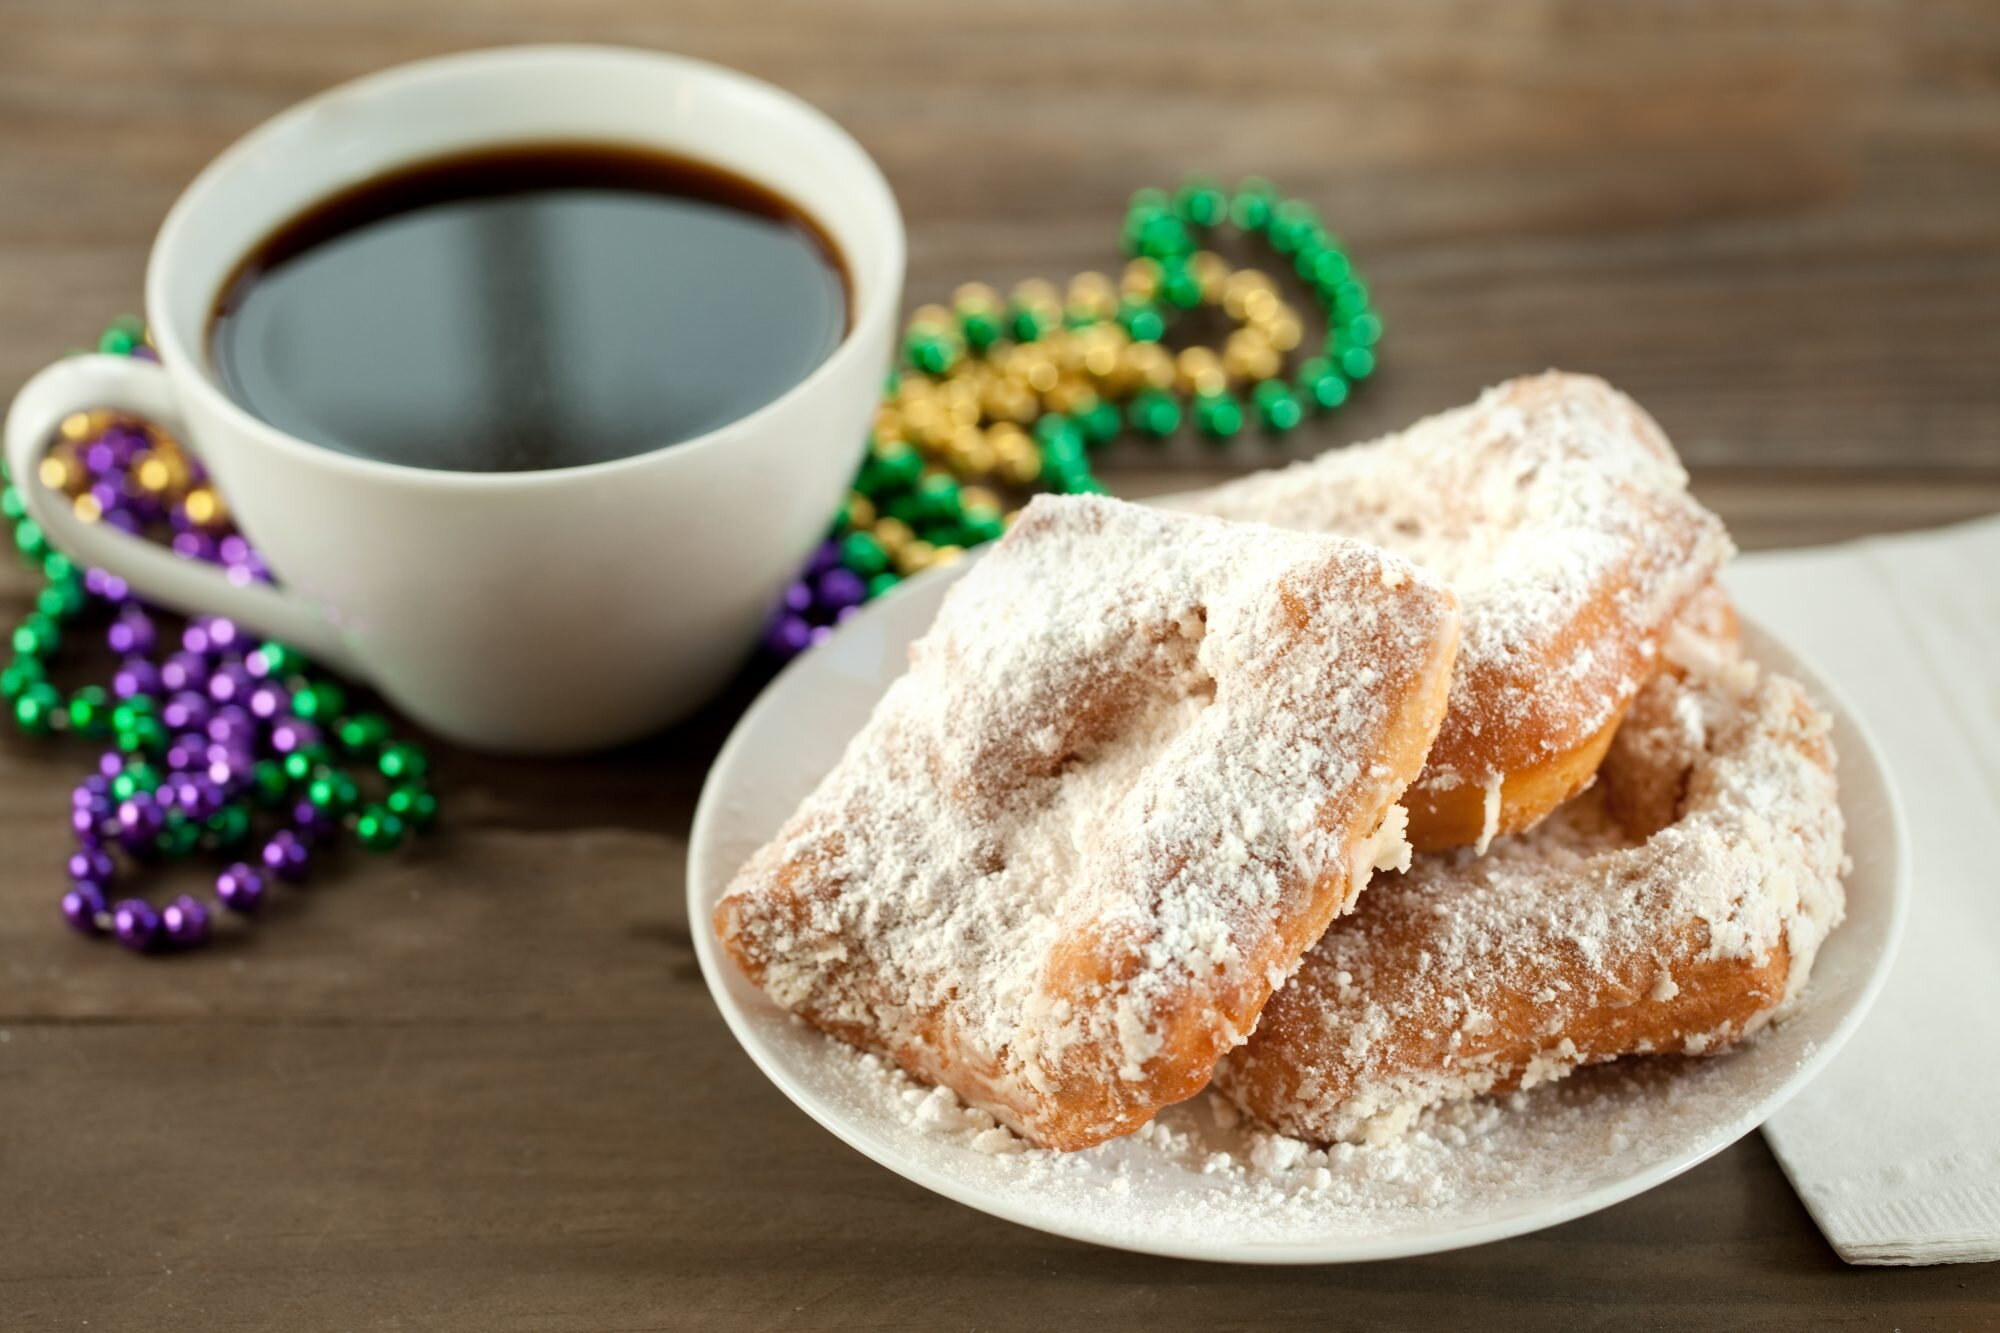 What Is a Beignet and How Do You Make One?